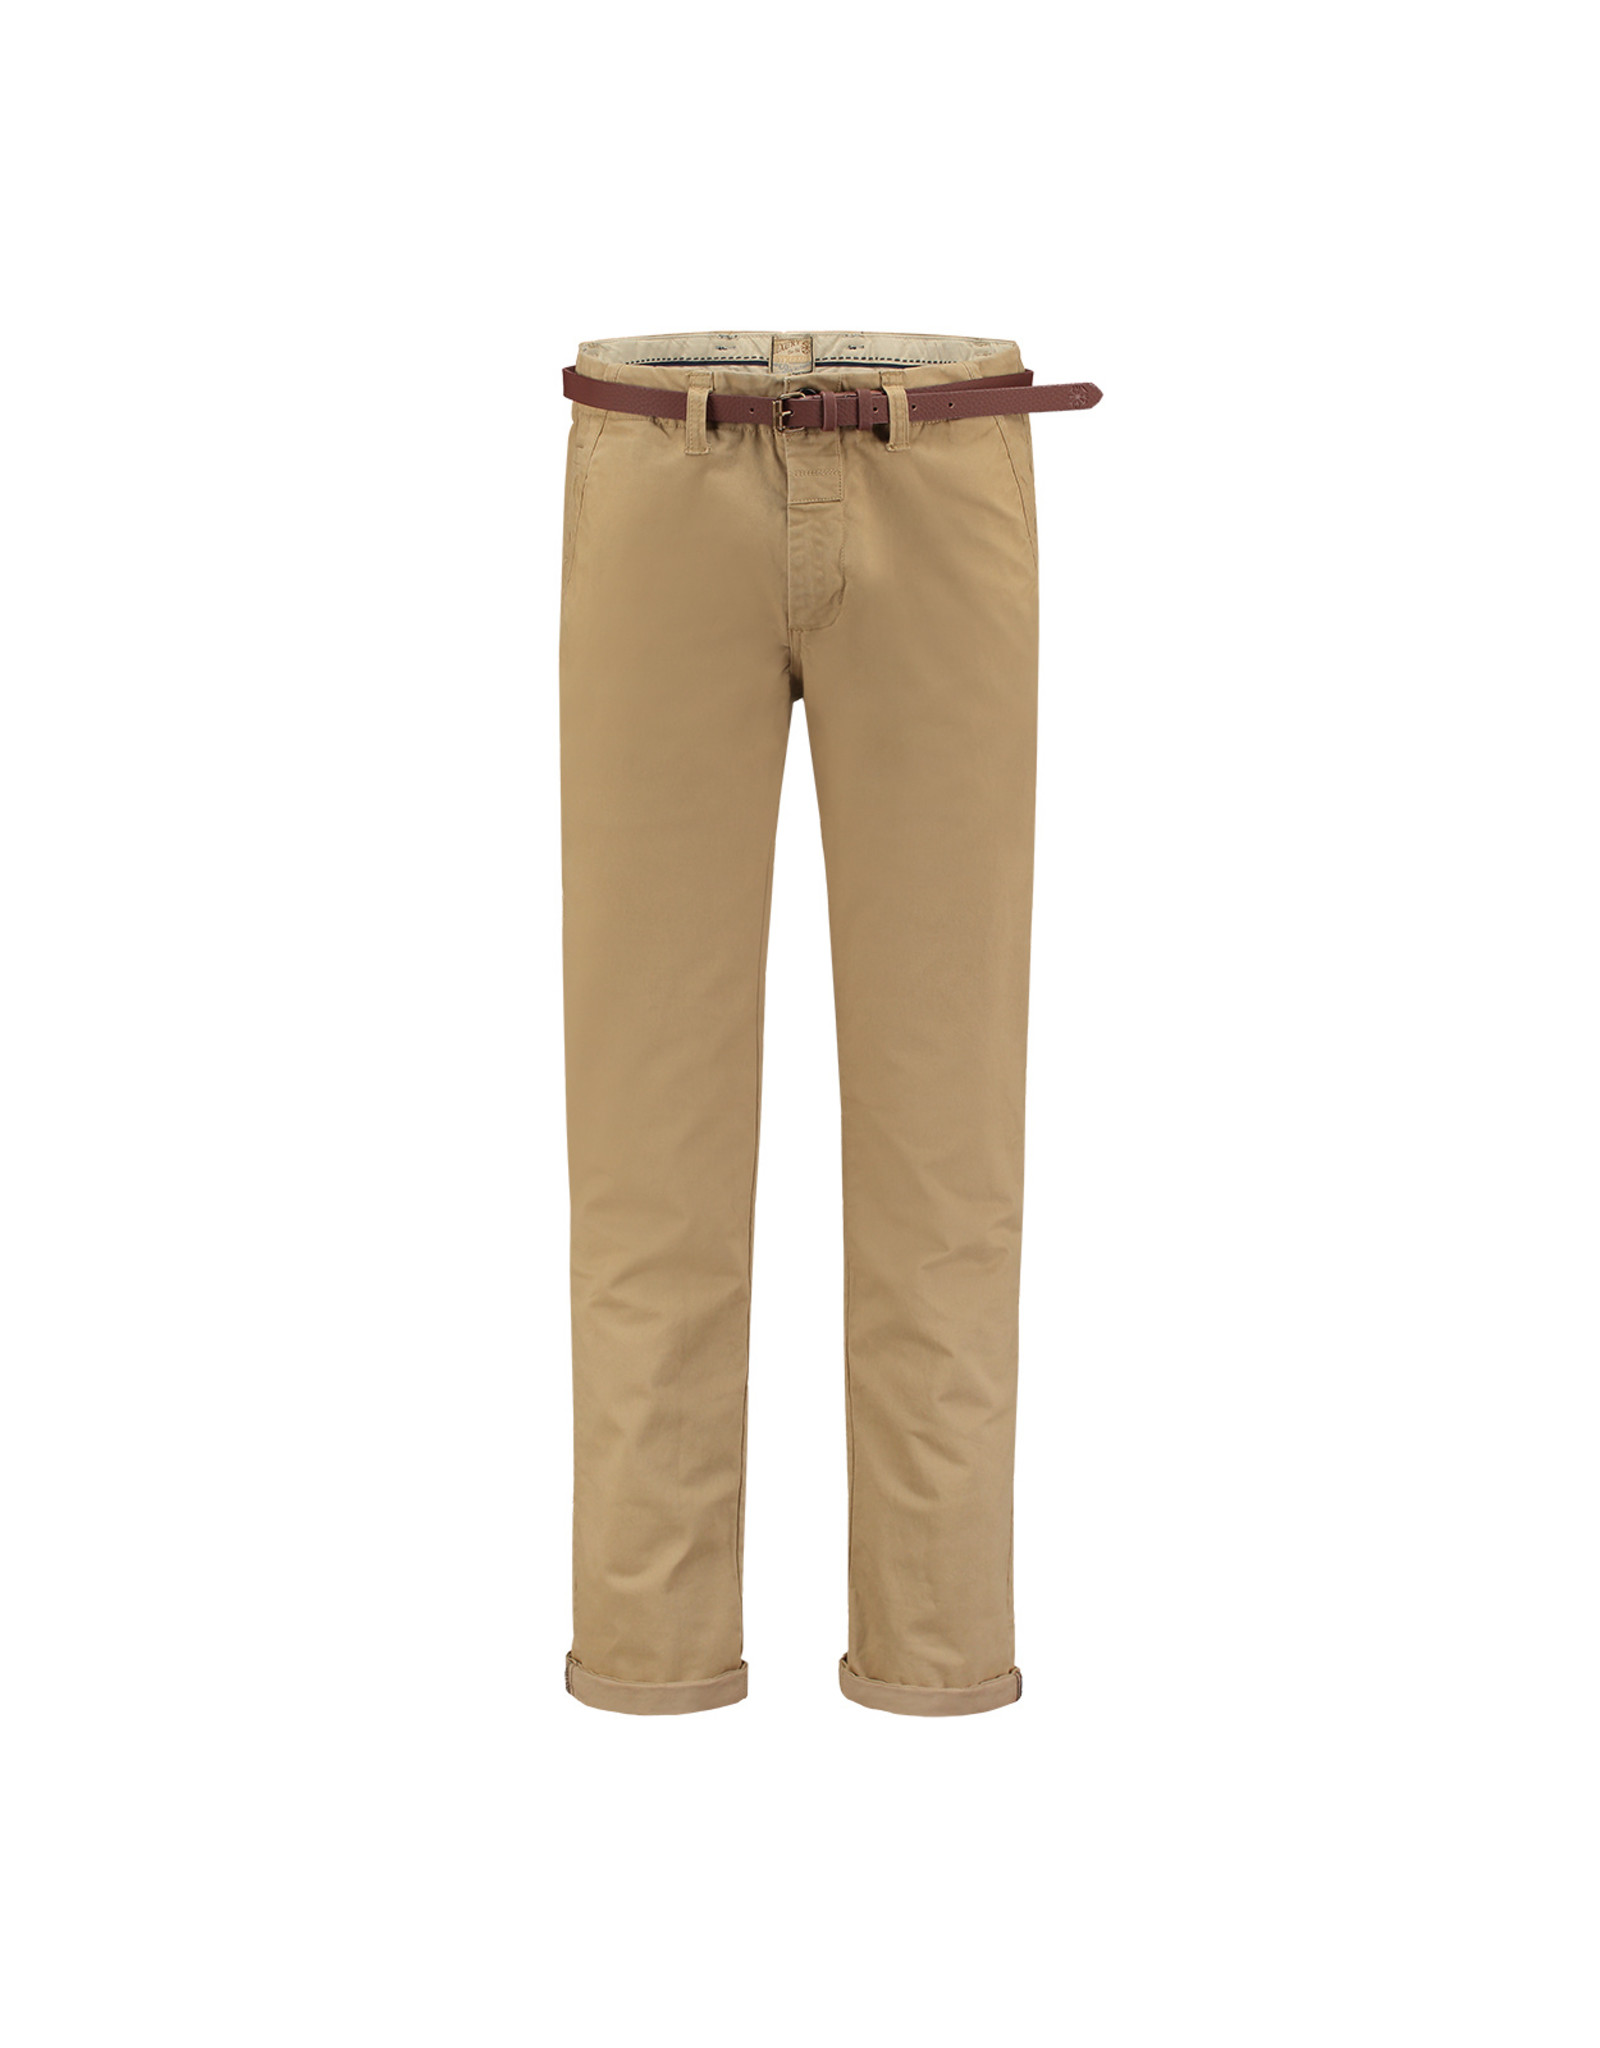 Dstrezzed Presley chino pant